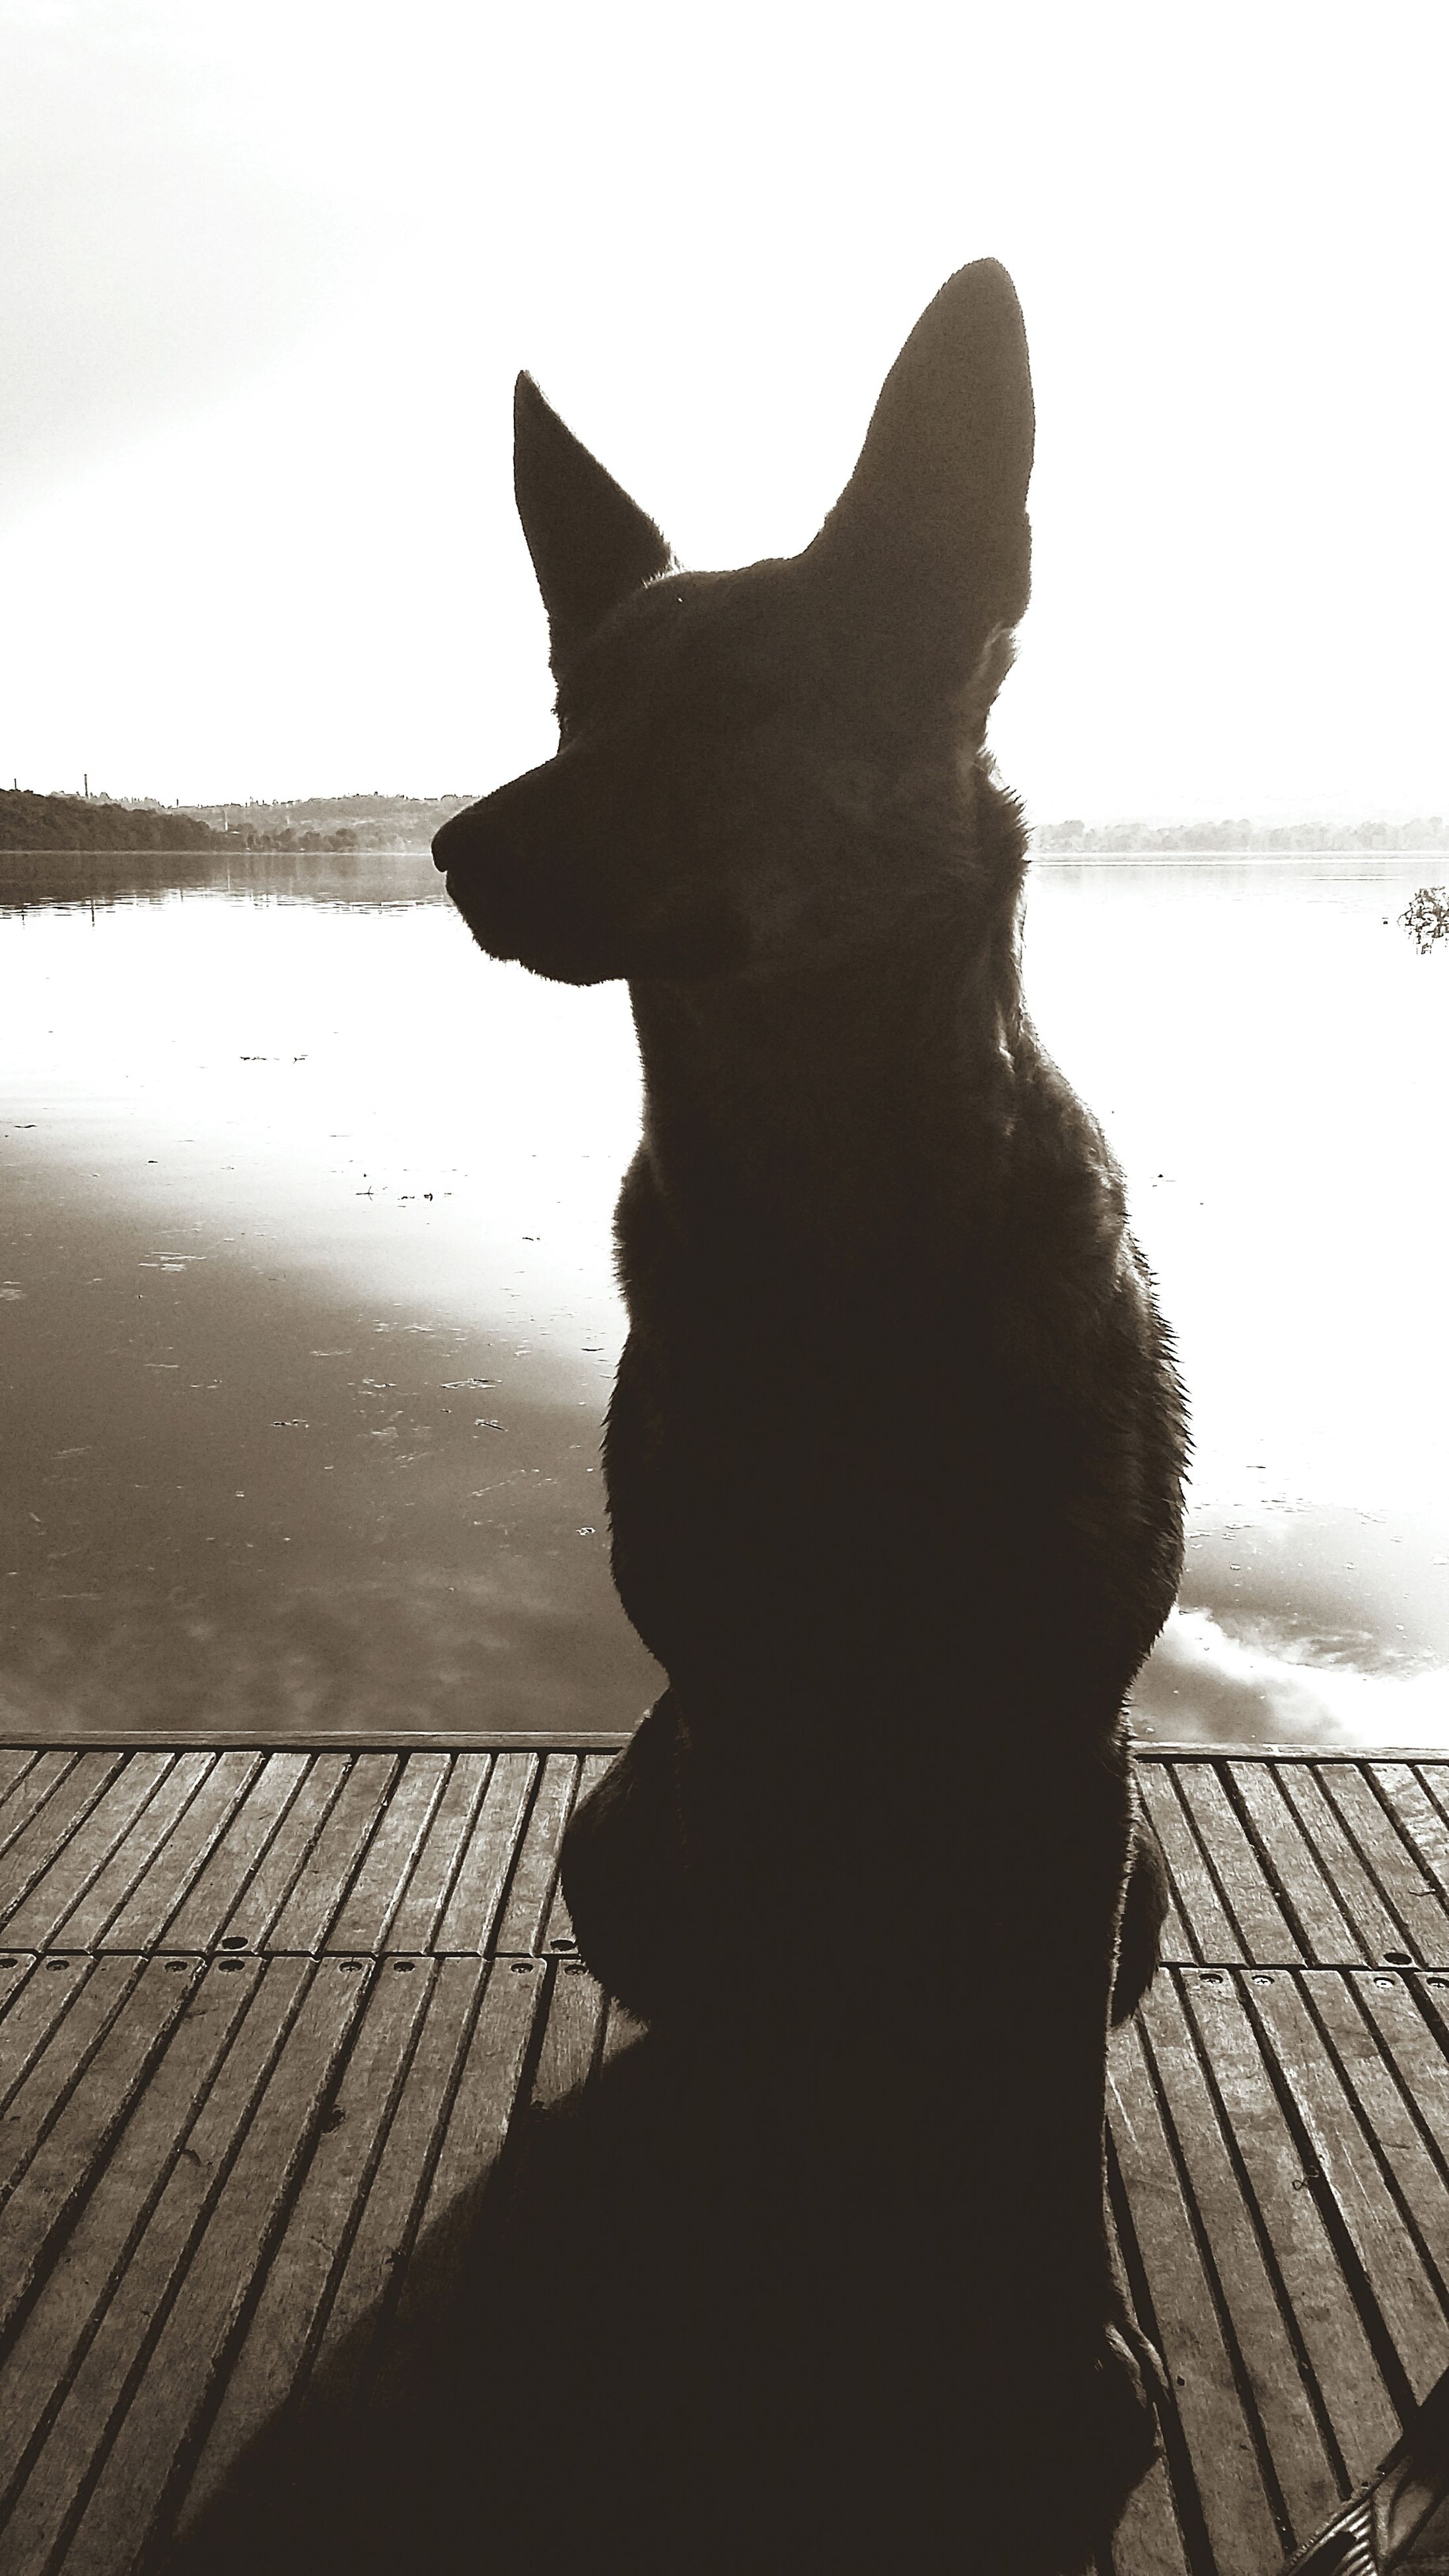 water, one animal, silhouette, animal themes, sky, sea, sitting, pets, reflection, mammal, sunlight, relaxation, nature, outdoors, pier, lake, day, dog, clear sky, domestic animals